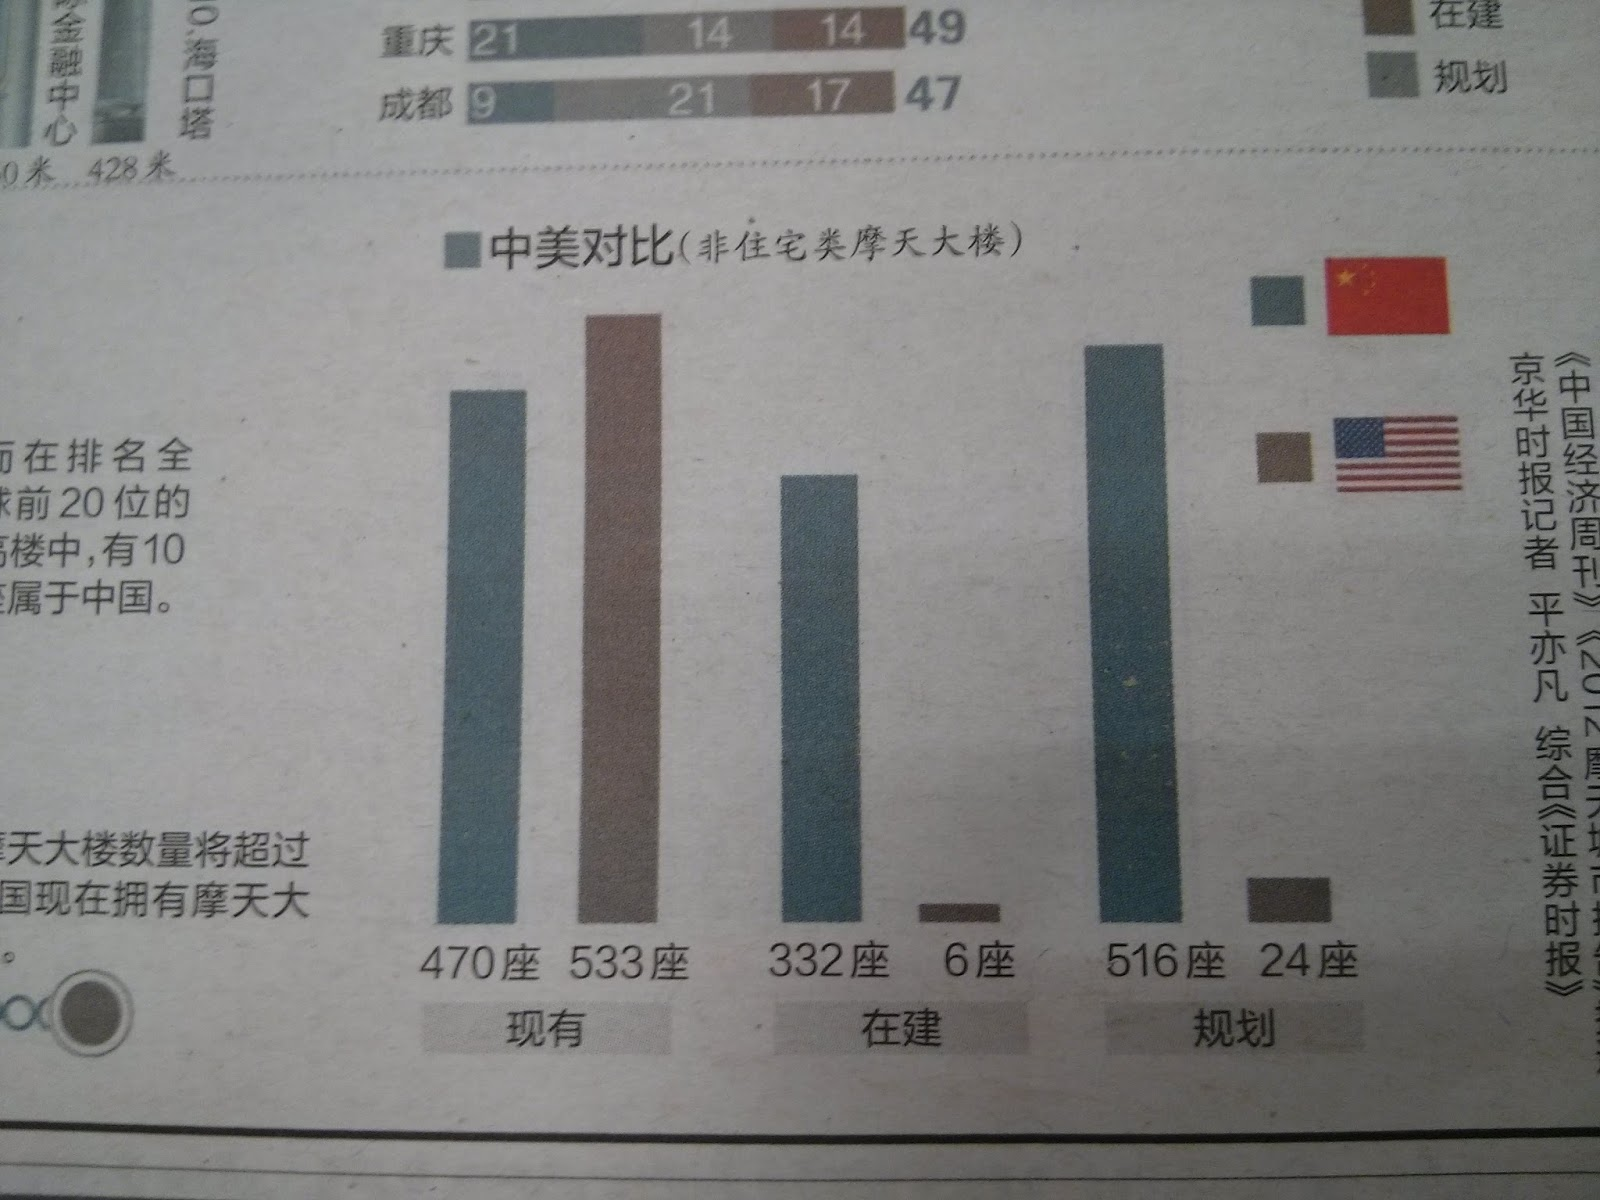 Investing in Chinese Stocks—投资大中华地区股市: August 2013